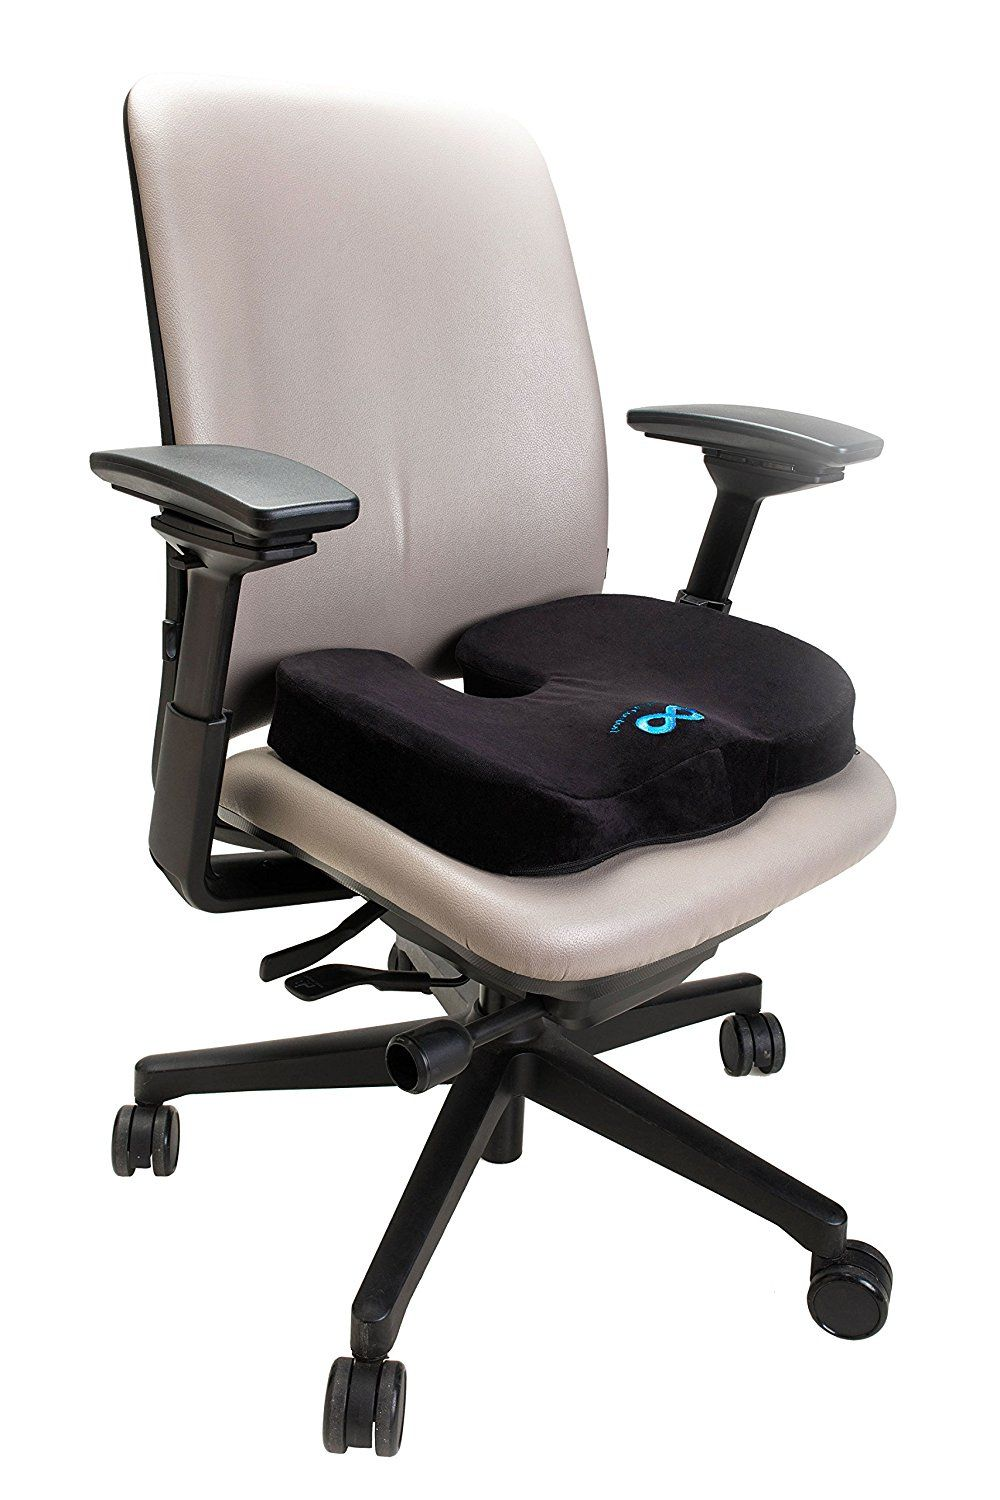 70 Soft Cushion For Office Chair Best Spray Paint Wood Furniture Check More